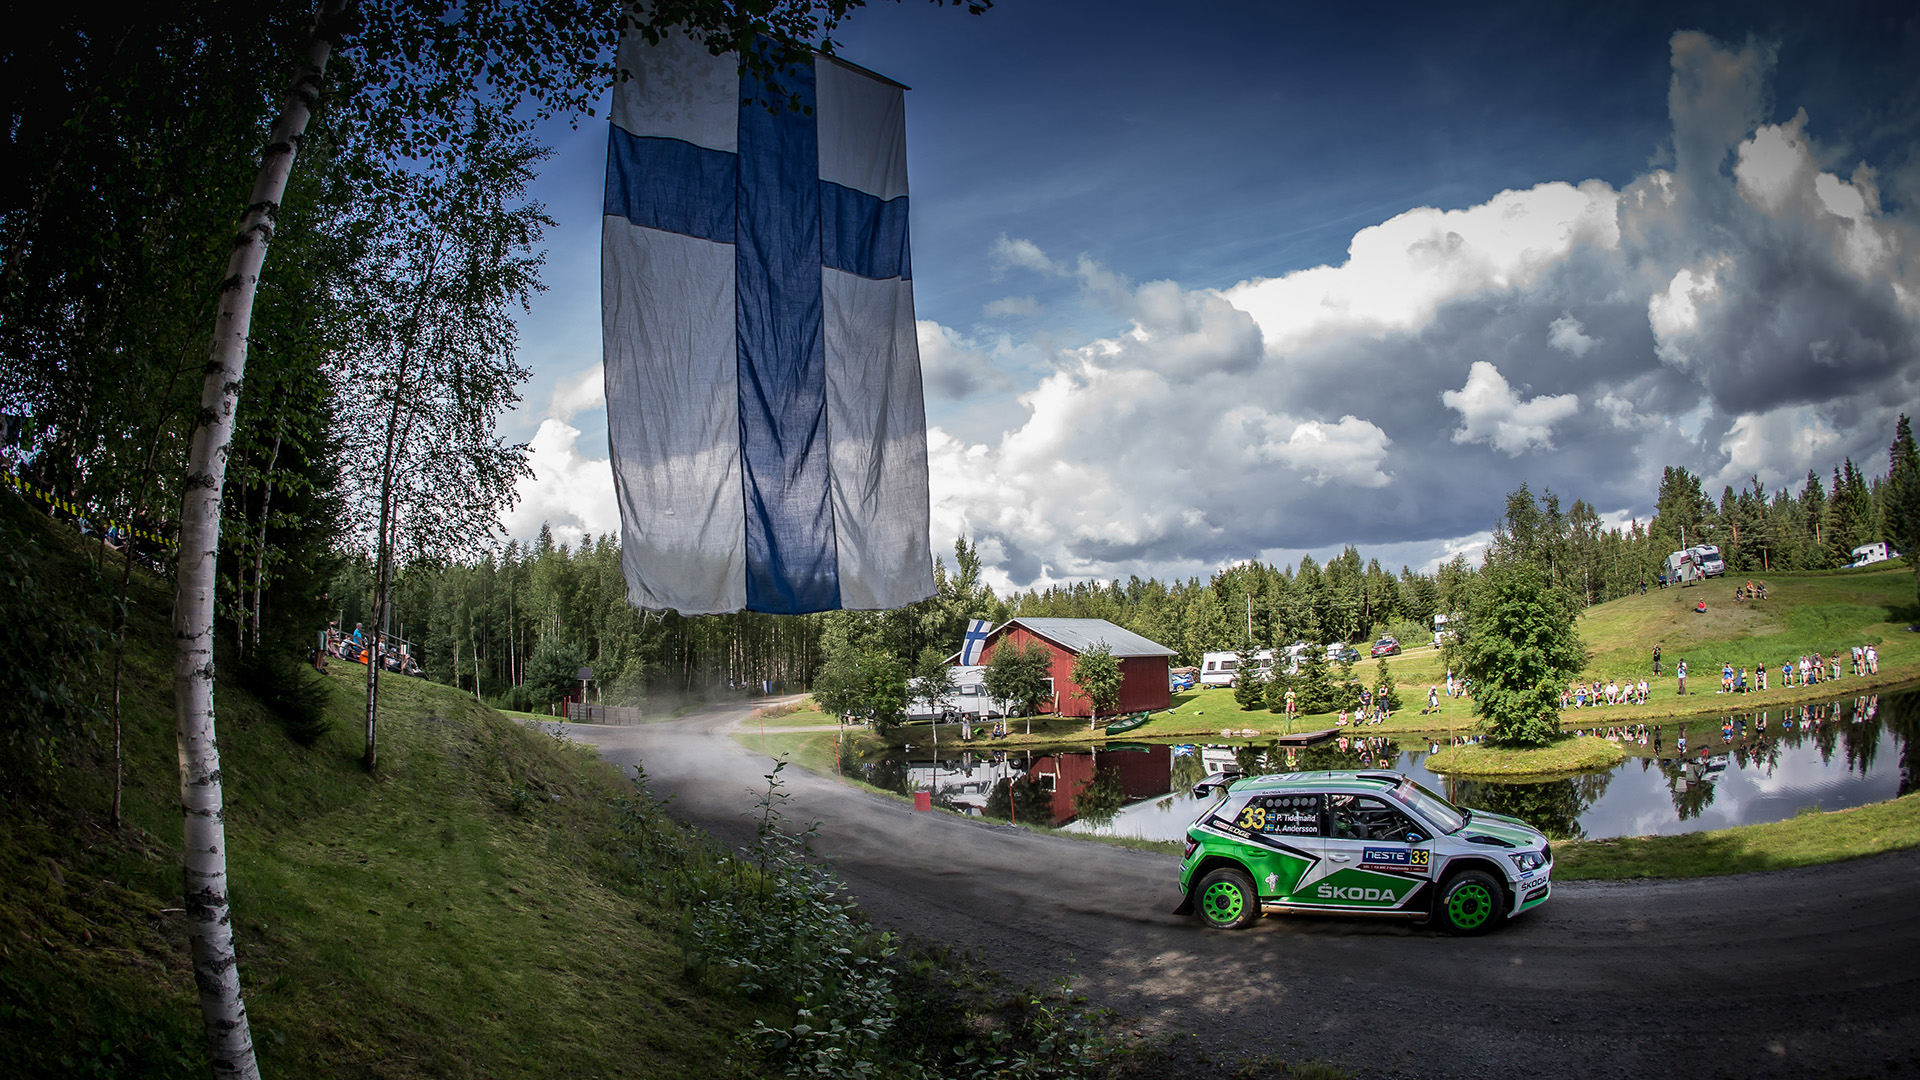 Rally Finland 2018: All You Need to Know Before Rally Starts